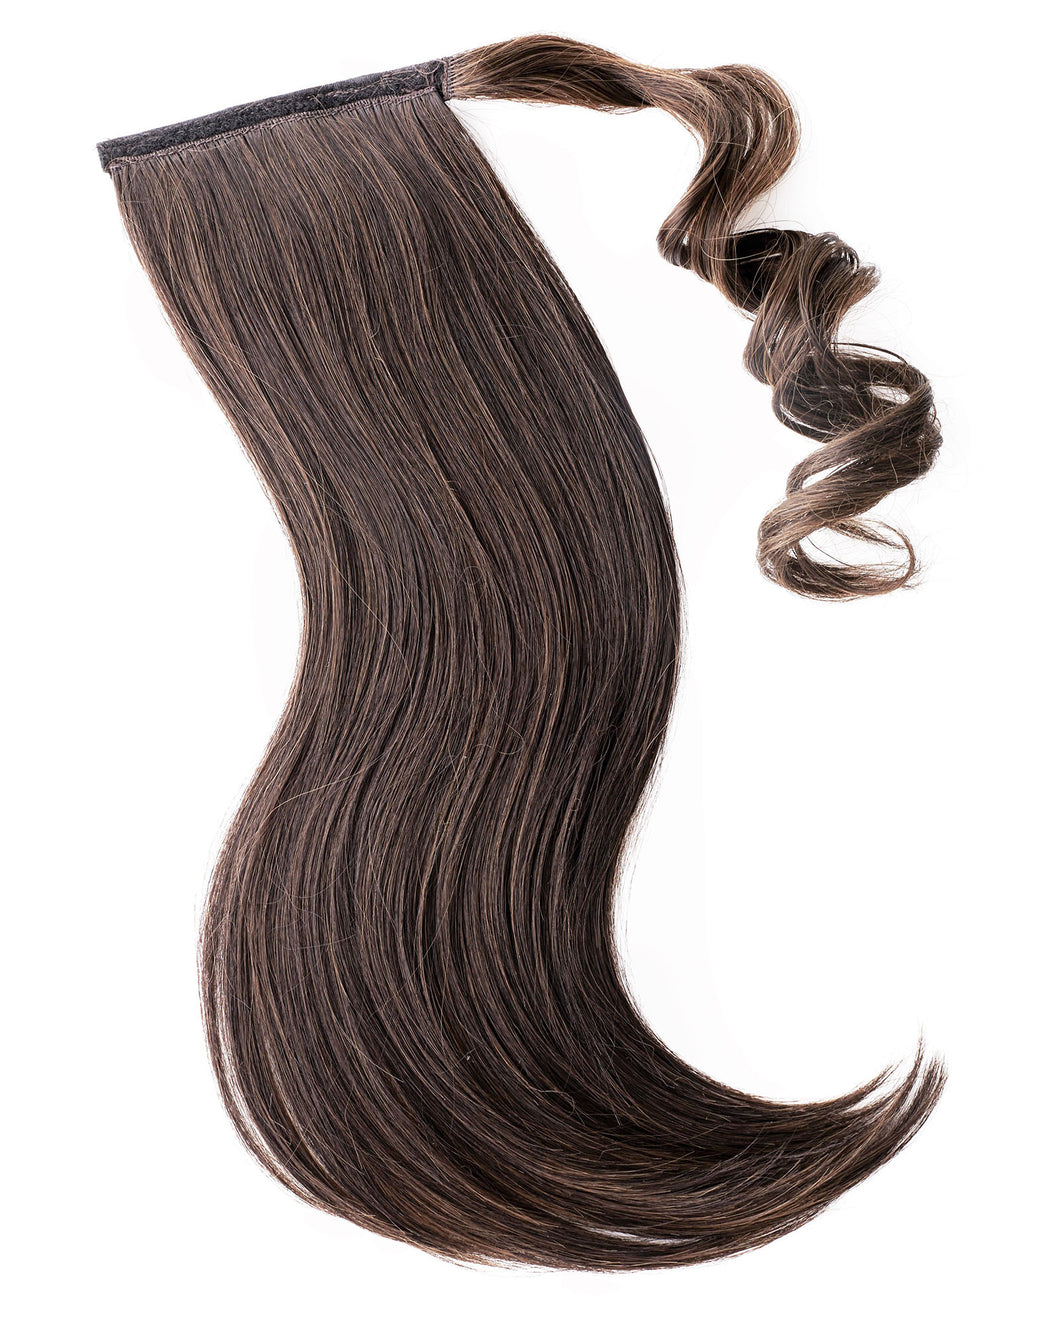 Vivir Ponytail - Vivir Hair Extensions and clip-ins